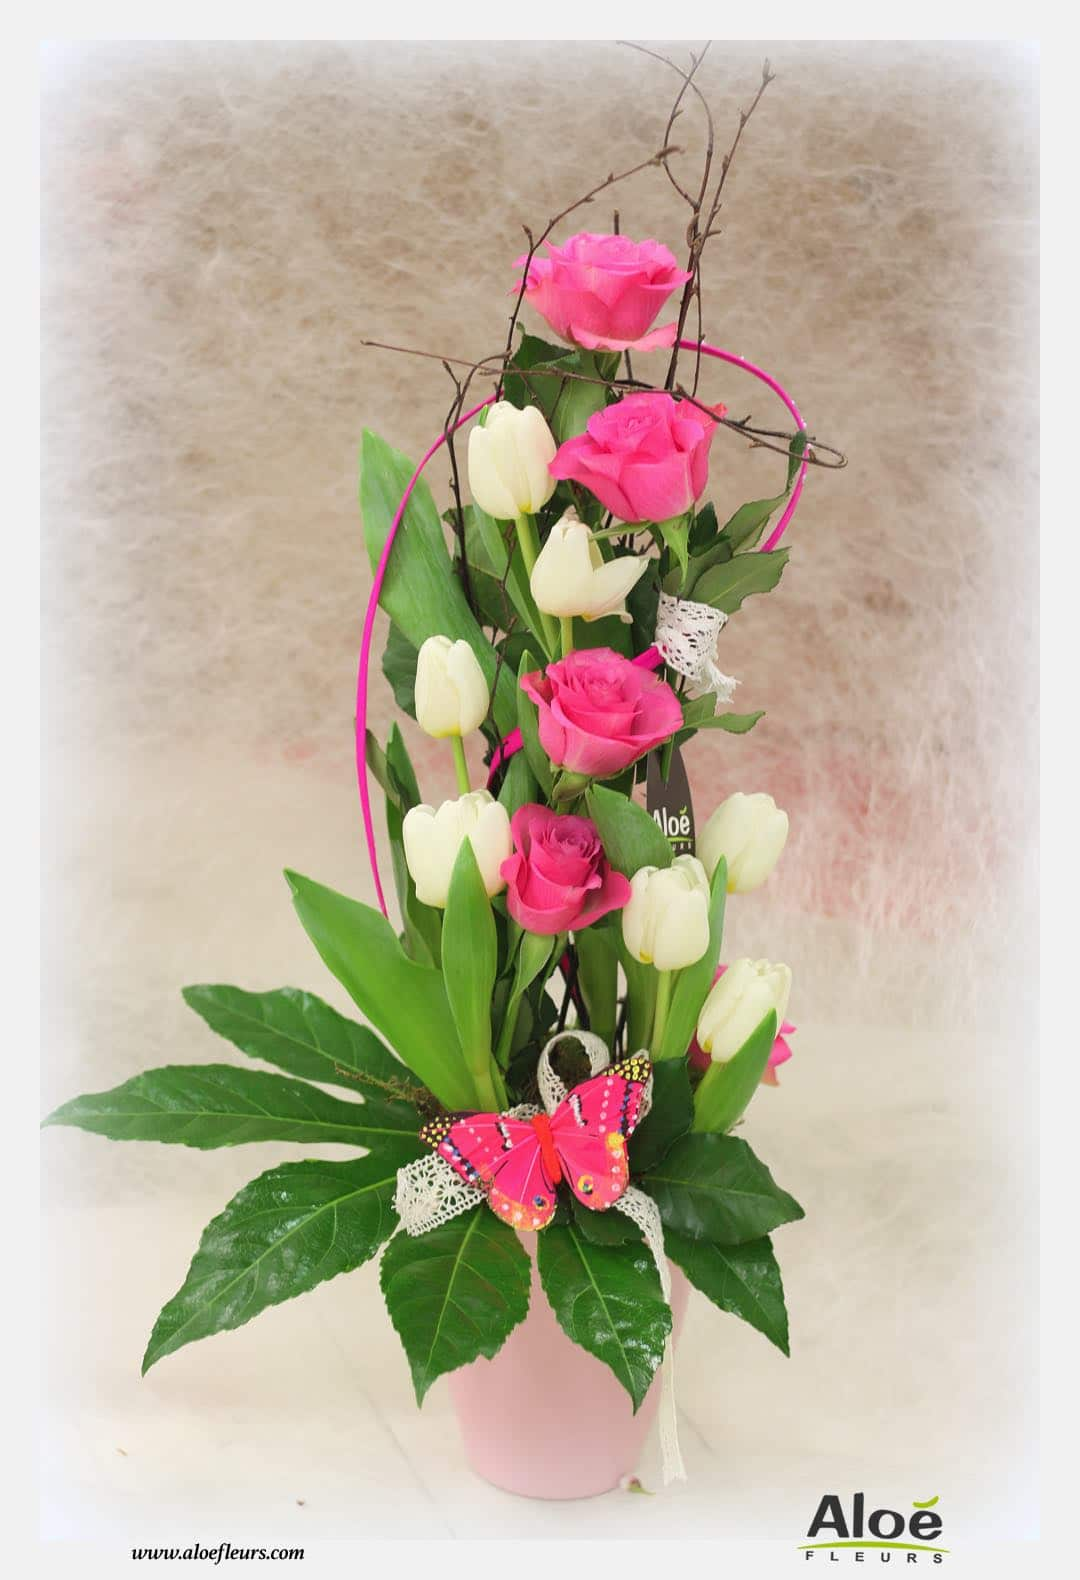 Les bouquets de printemps 2016 for Bouquet de fleurs printemps